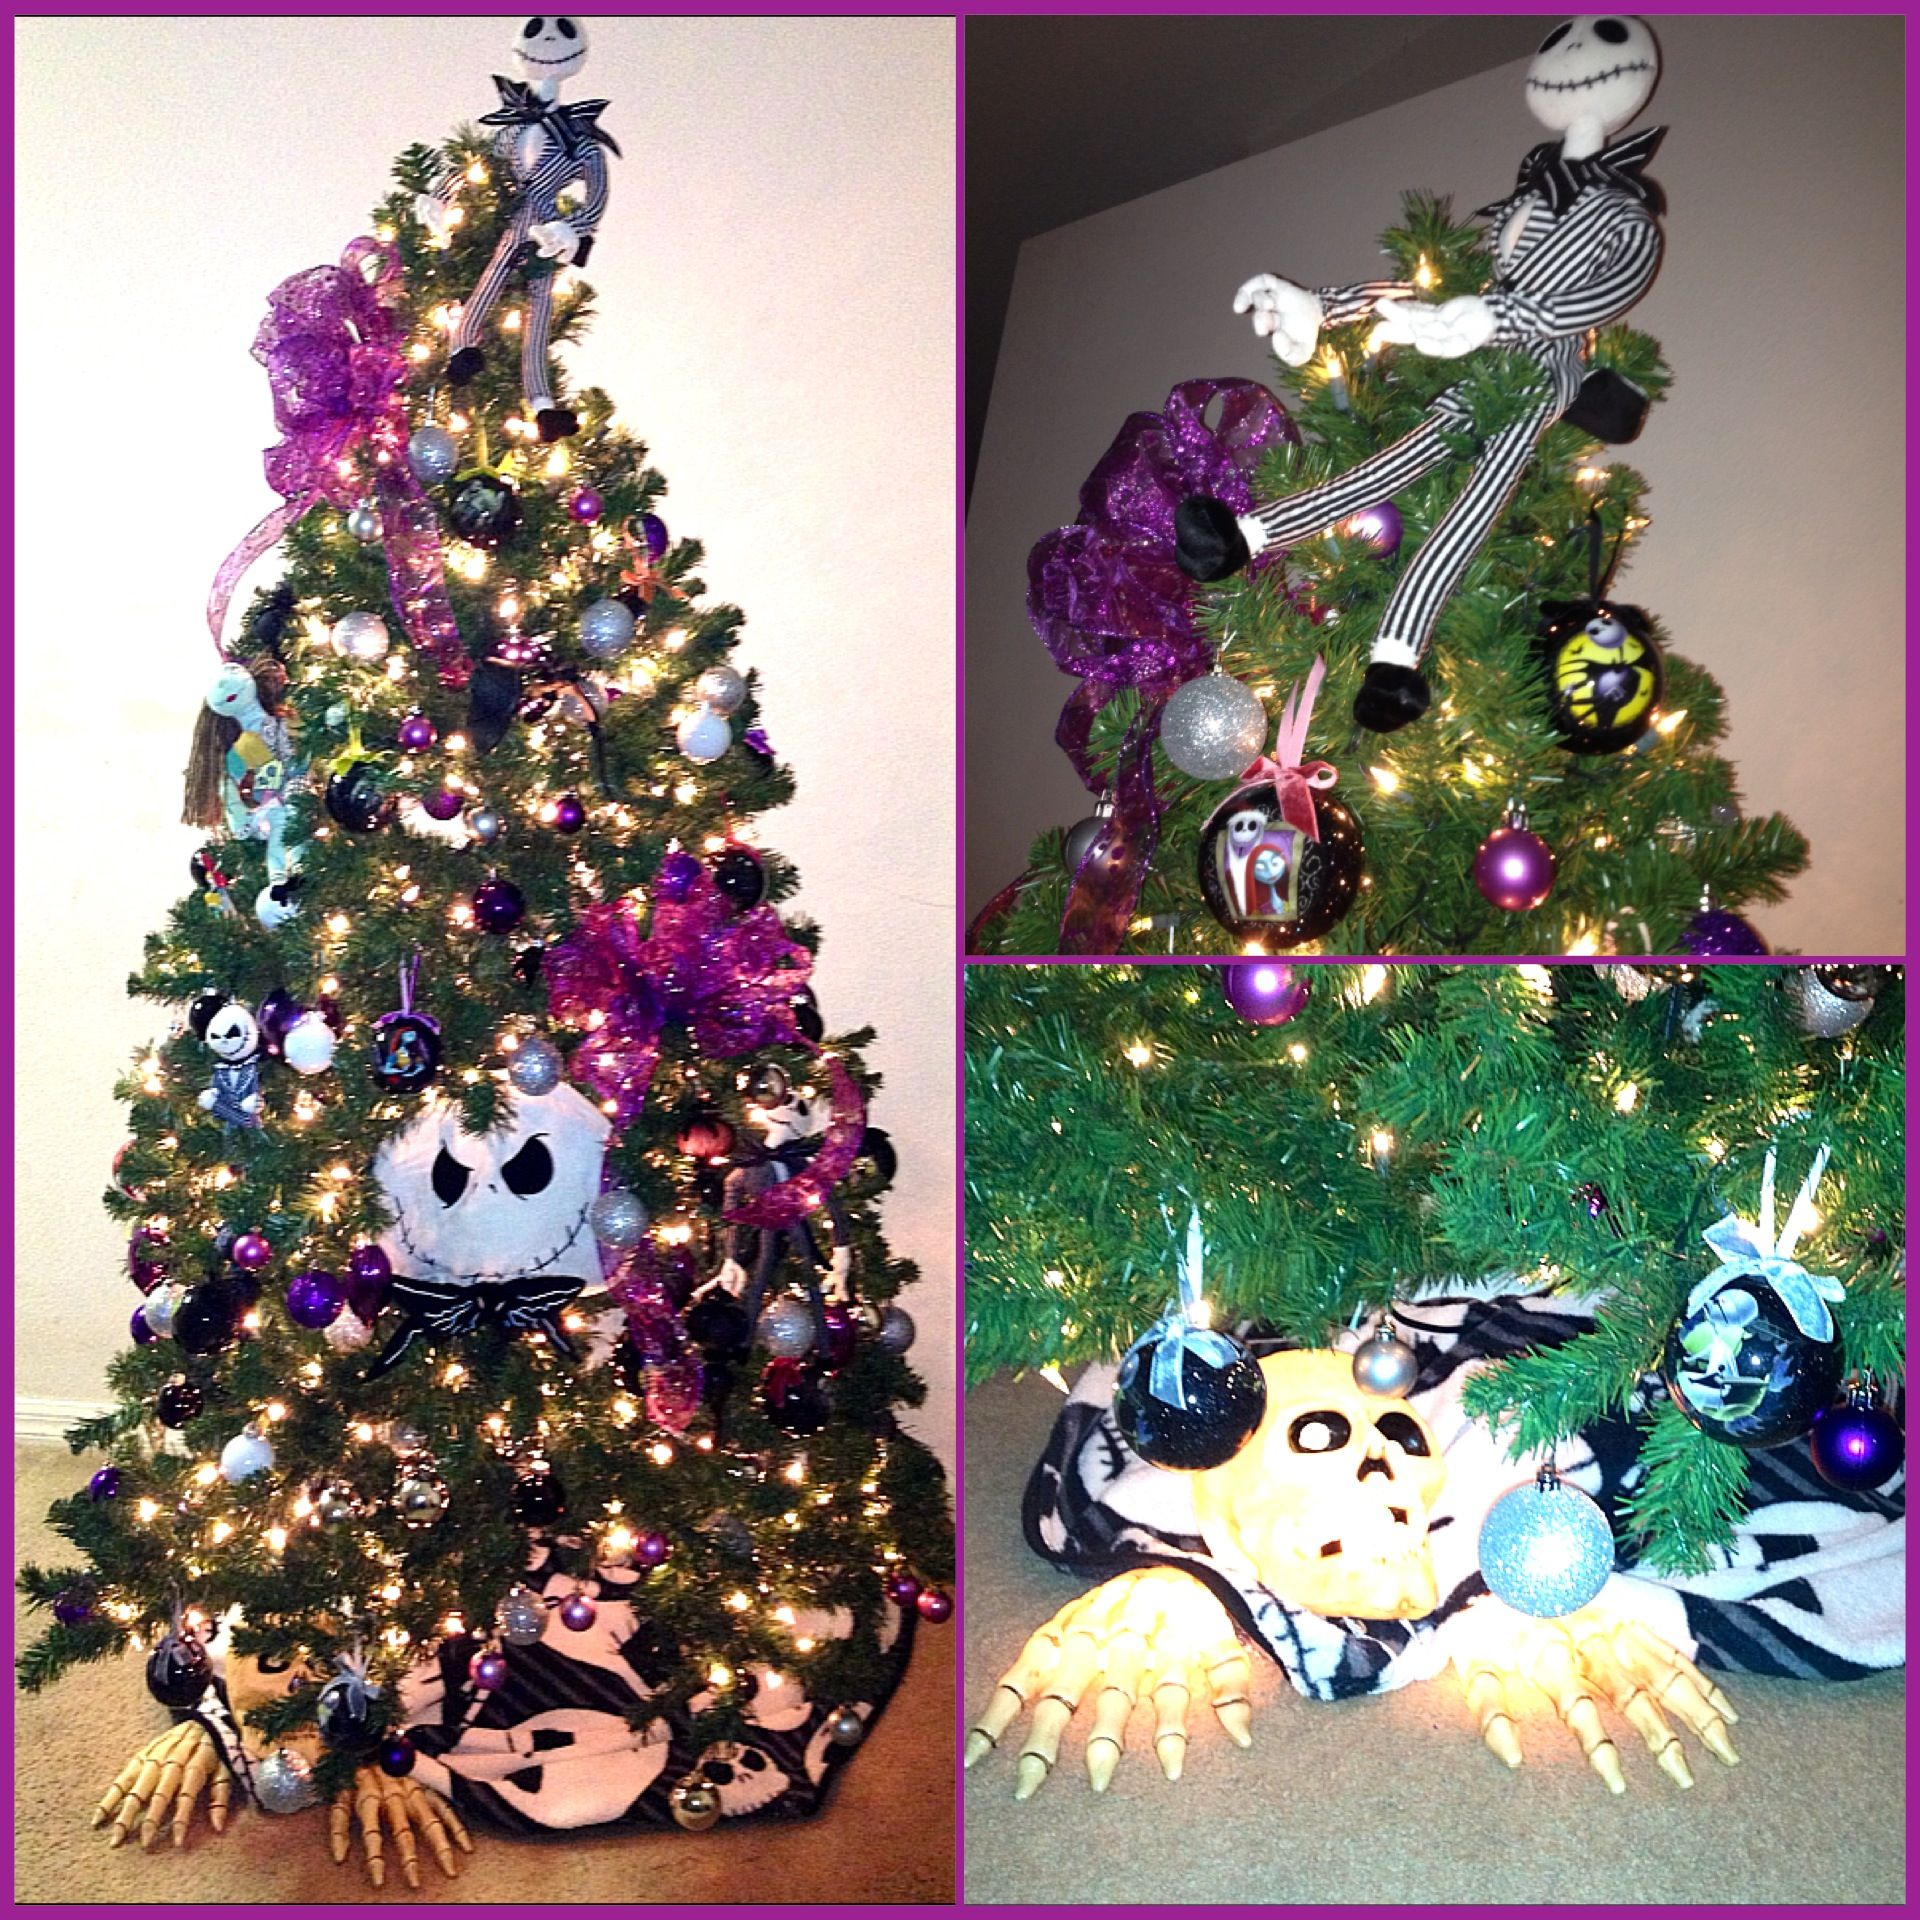 Our 2012 Nightmare Before Christmas theme tree ... We added all the ...